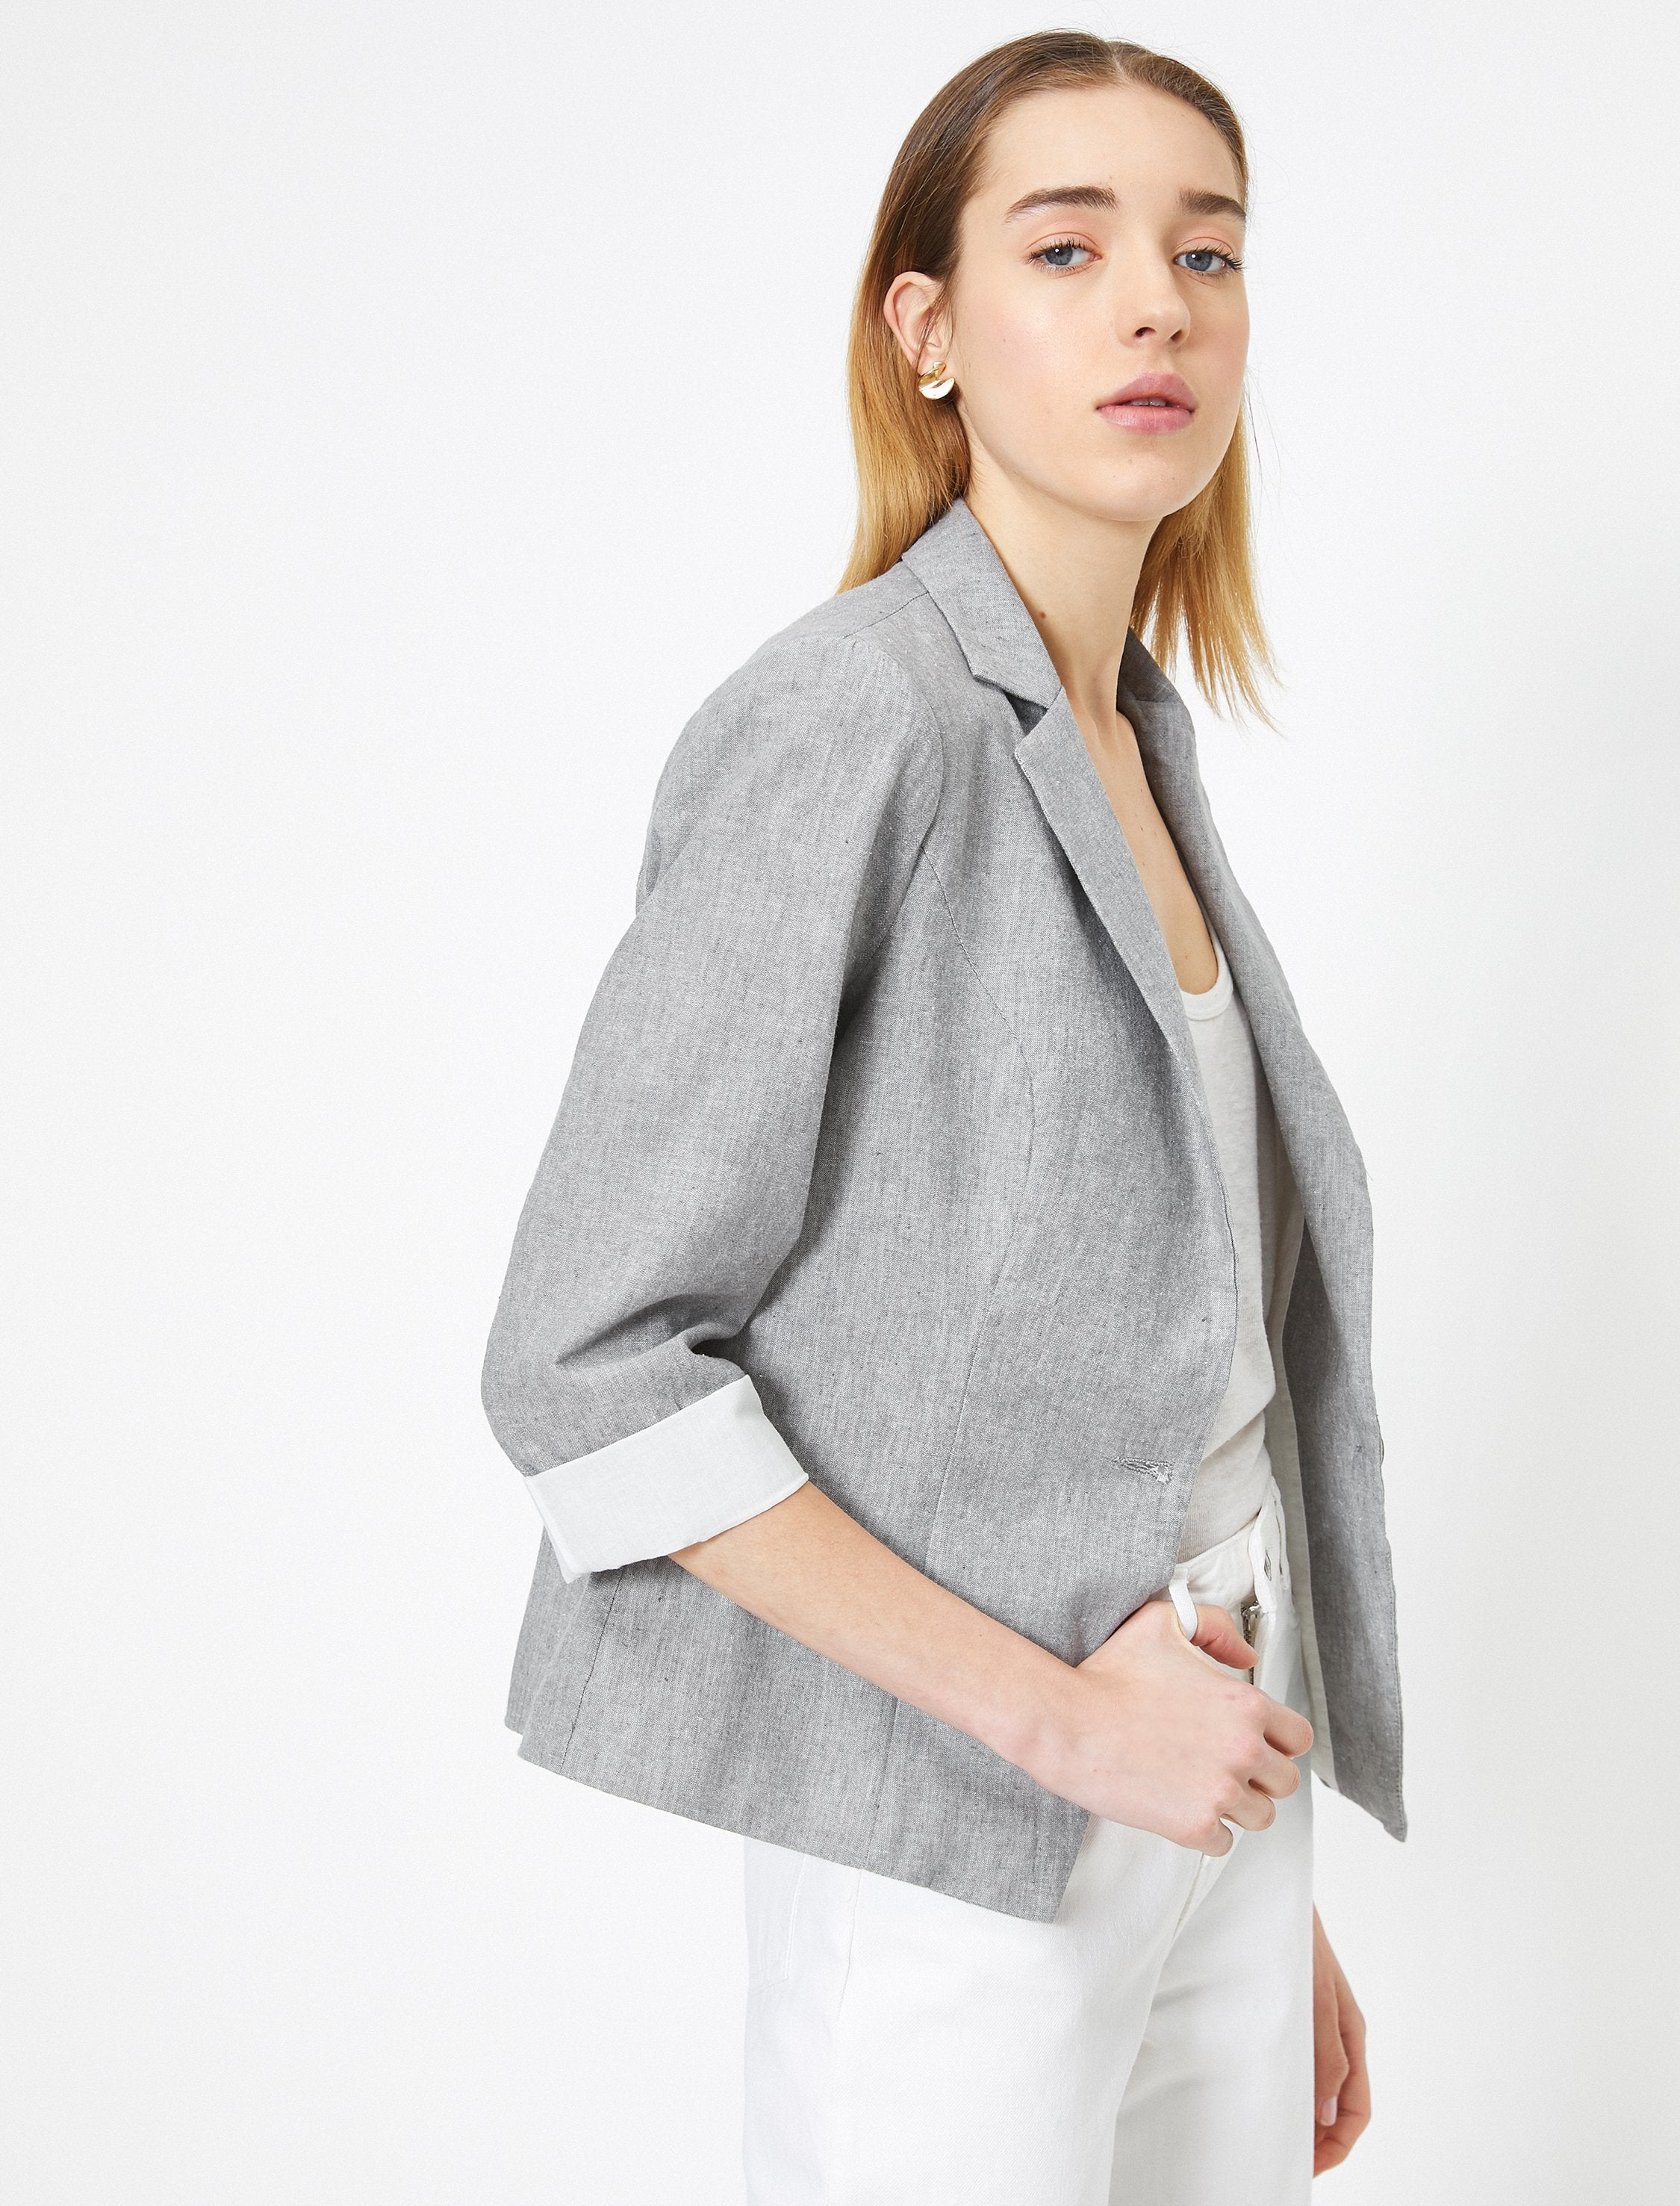 Short Natural Look Blazer in Gray